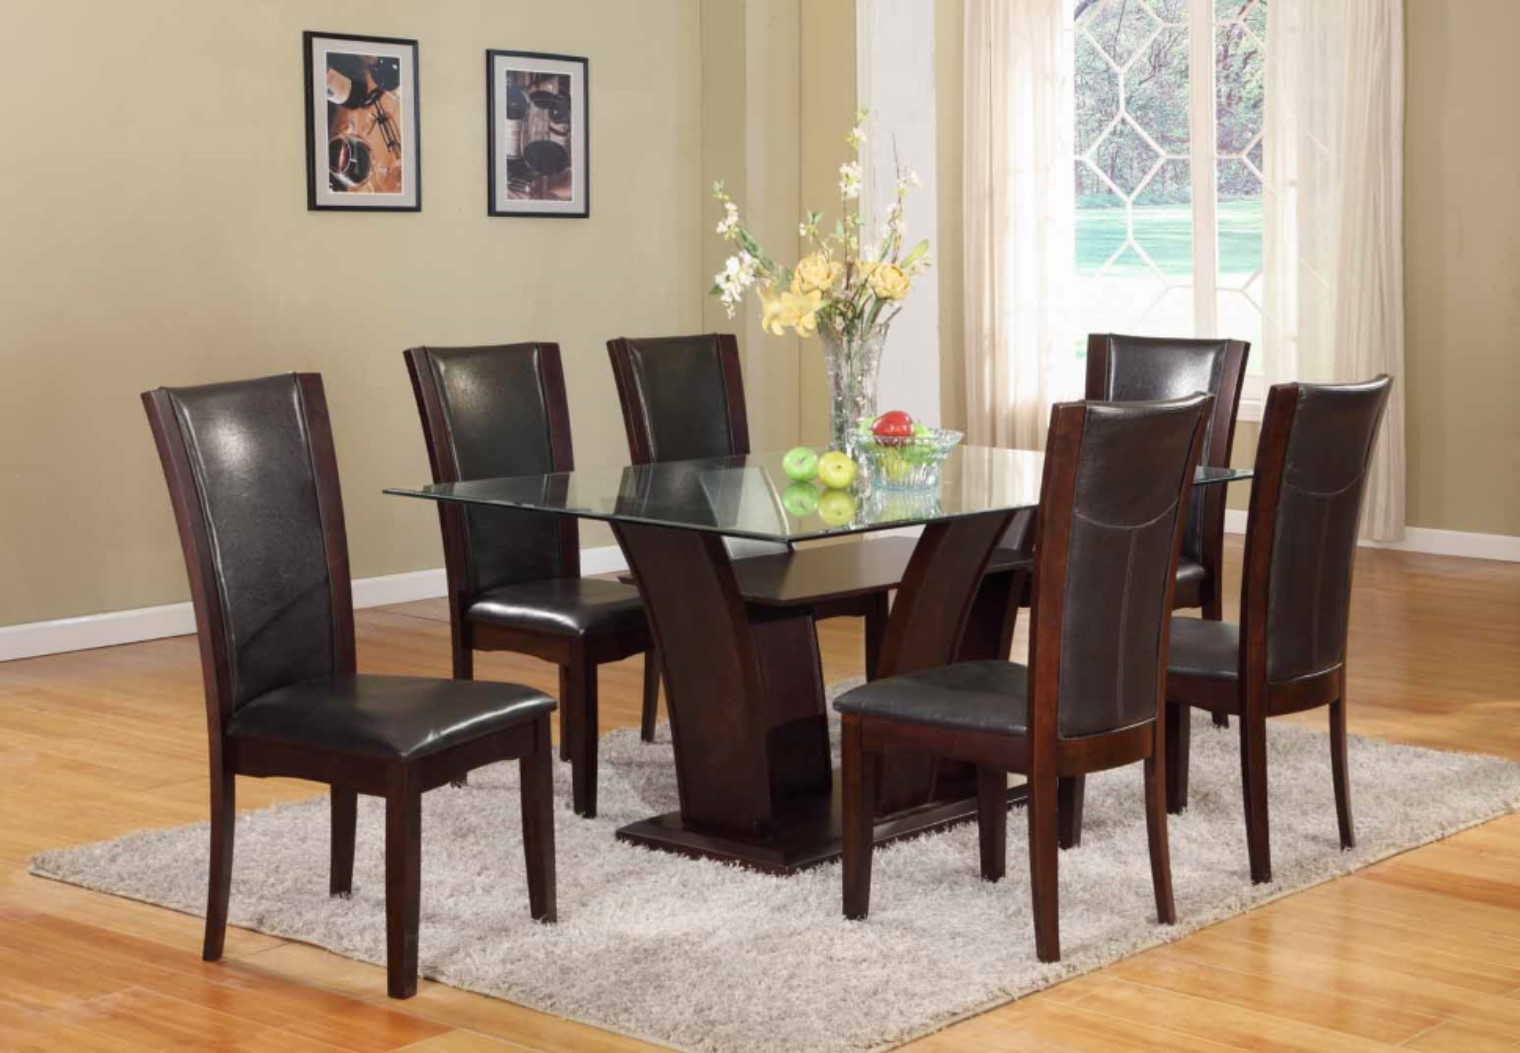 Royola Pacific of Seattle Inc Nationwide Furniture